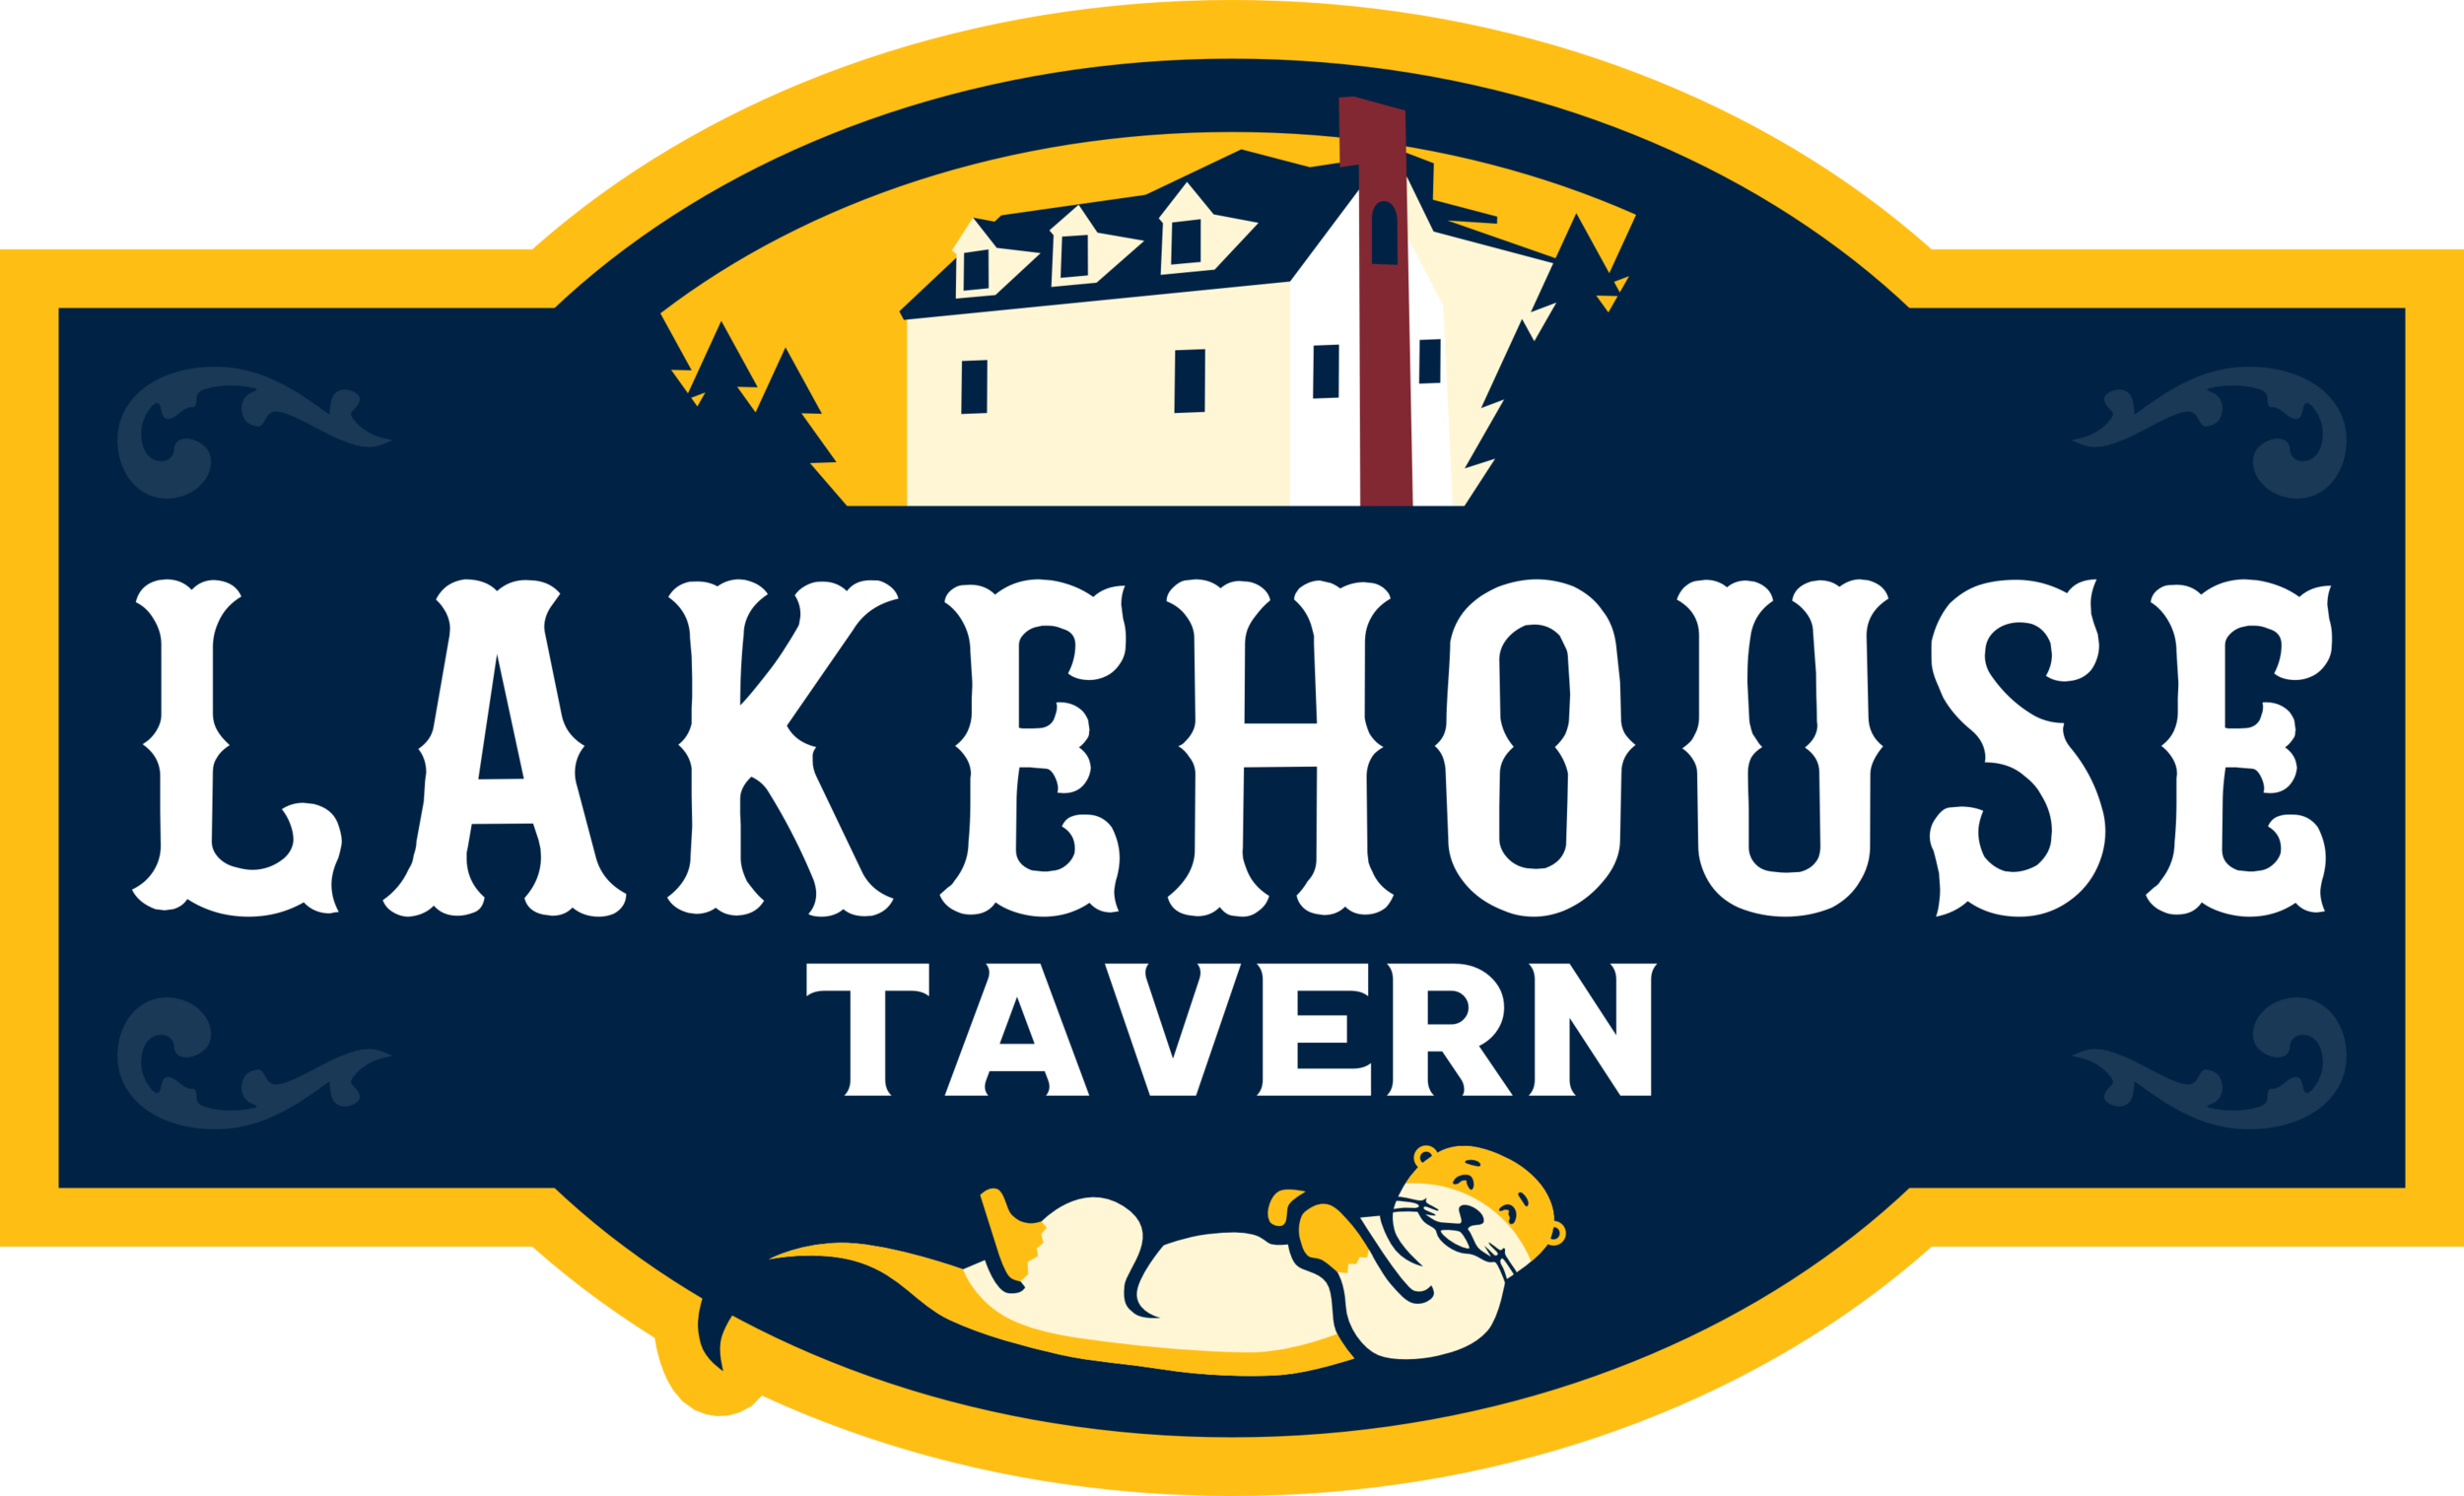 Lakehouse_Tavern_Primary_Logo_Full.png